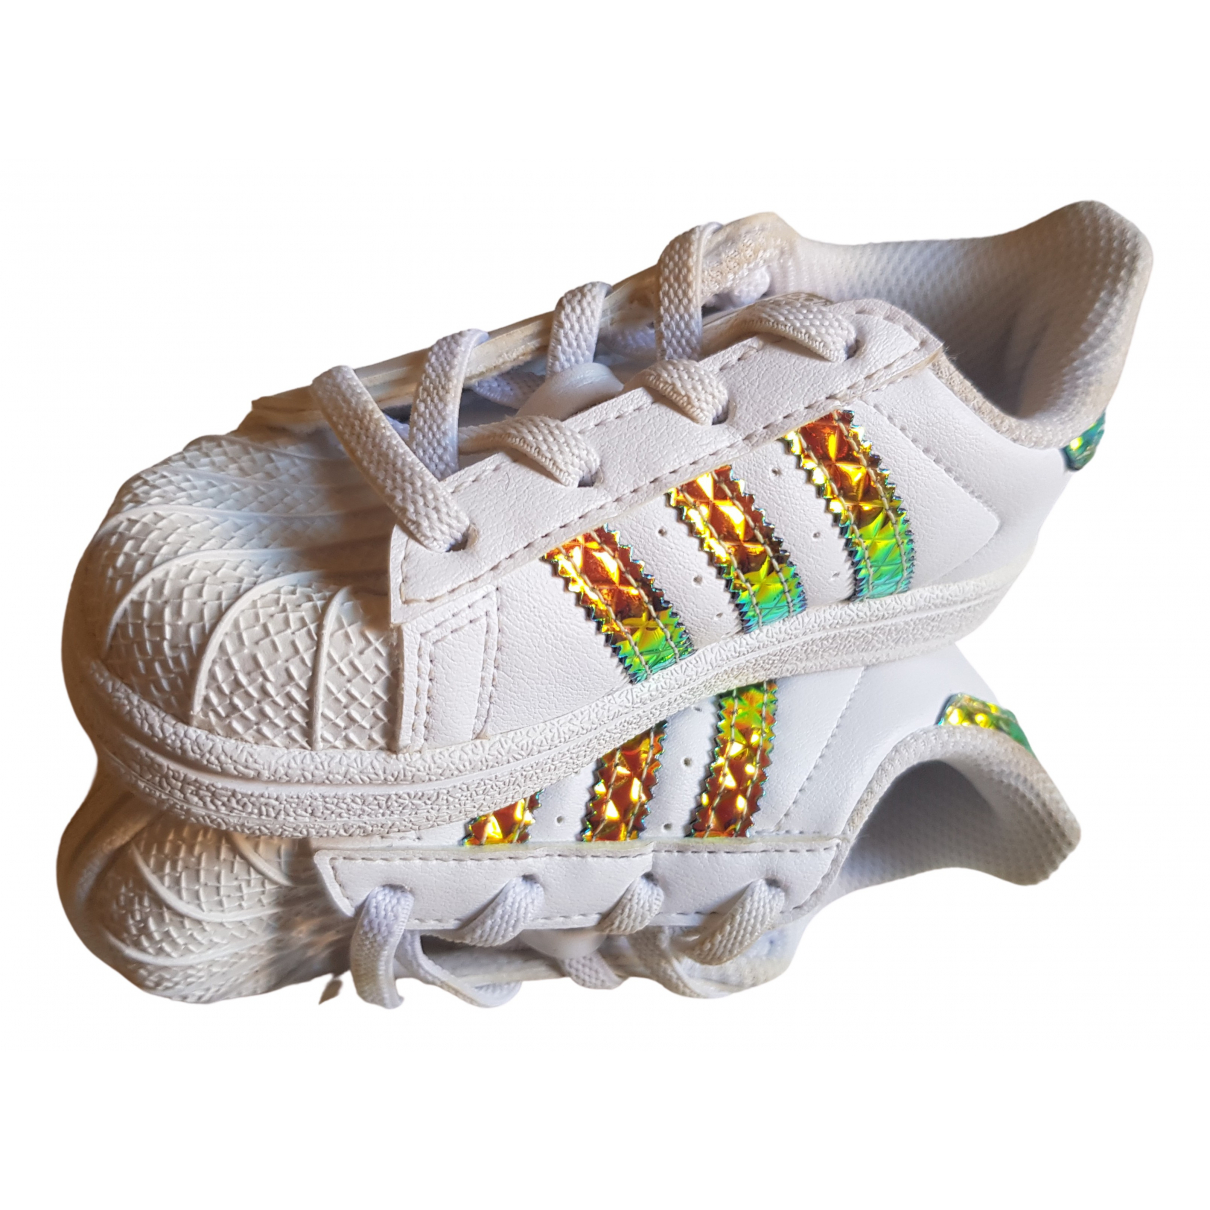 Adidas Superstar White Leather Trainers for Kids 23 FR